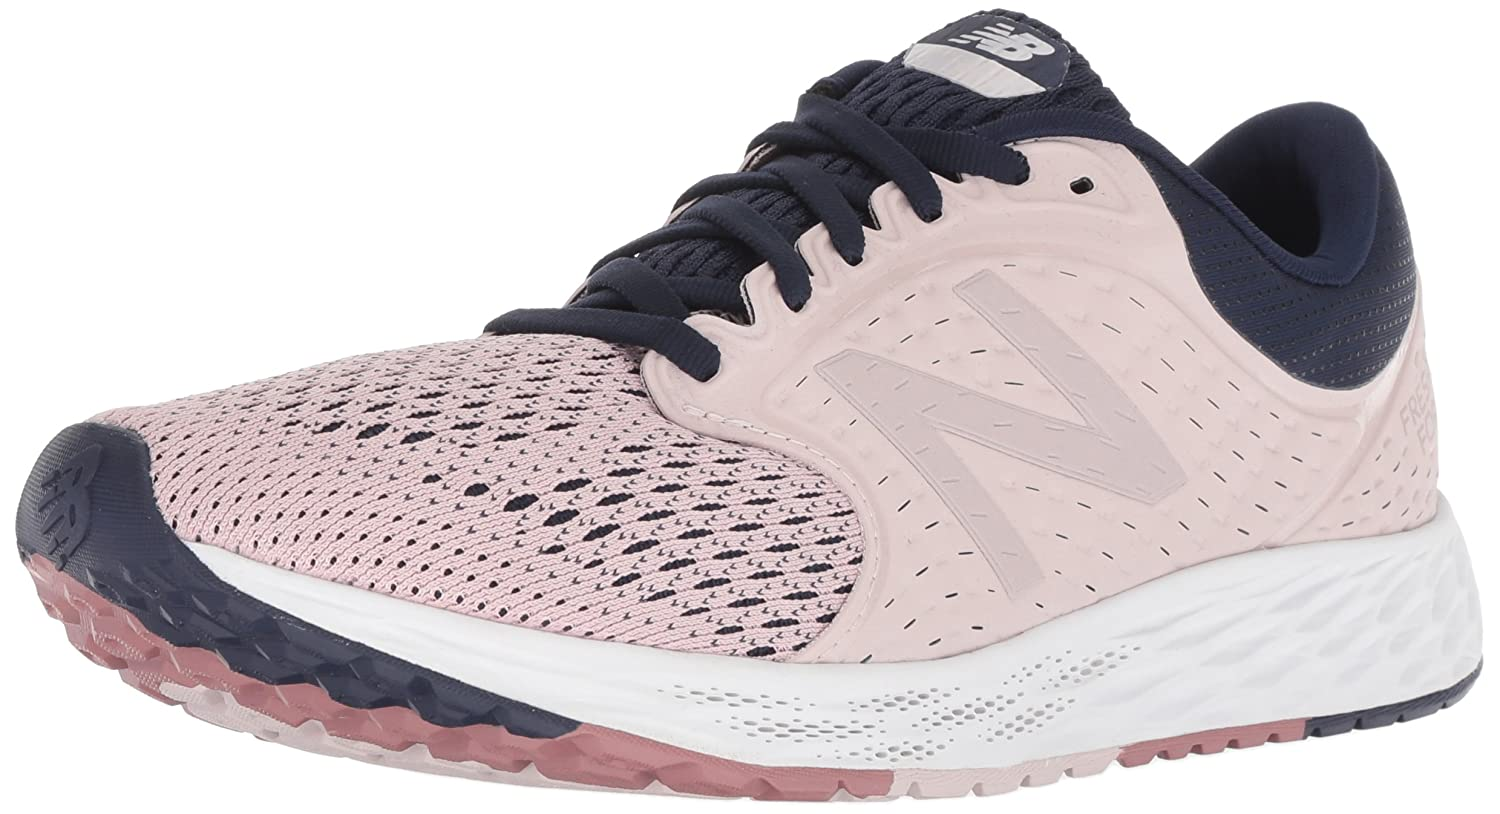 New Balance Women's Zante V4 Fresh Foam Running Shoe B075R756MC 9 B(M) US|Light Pink